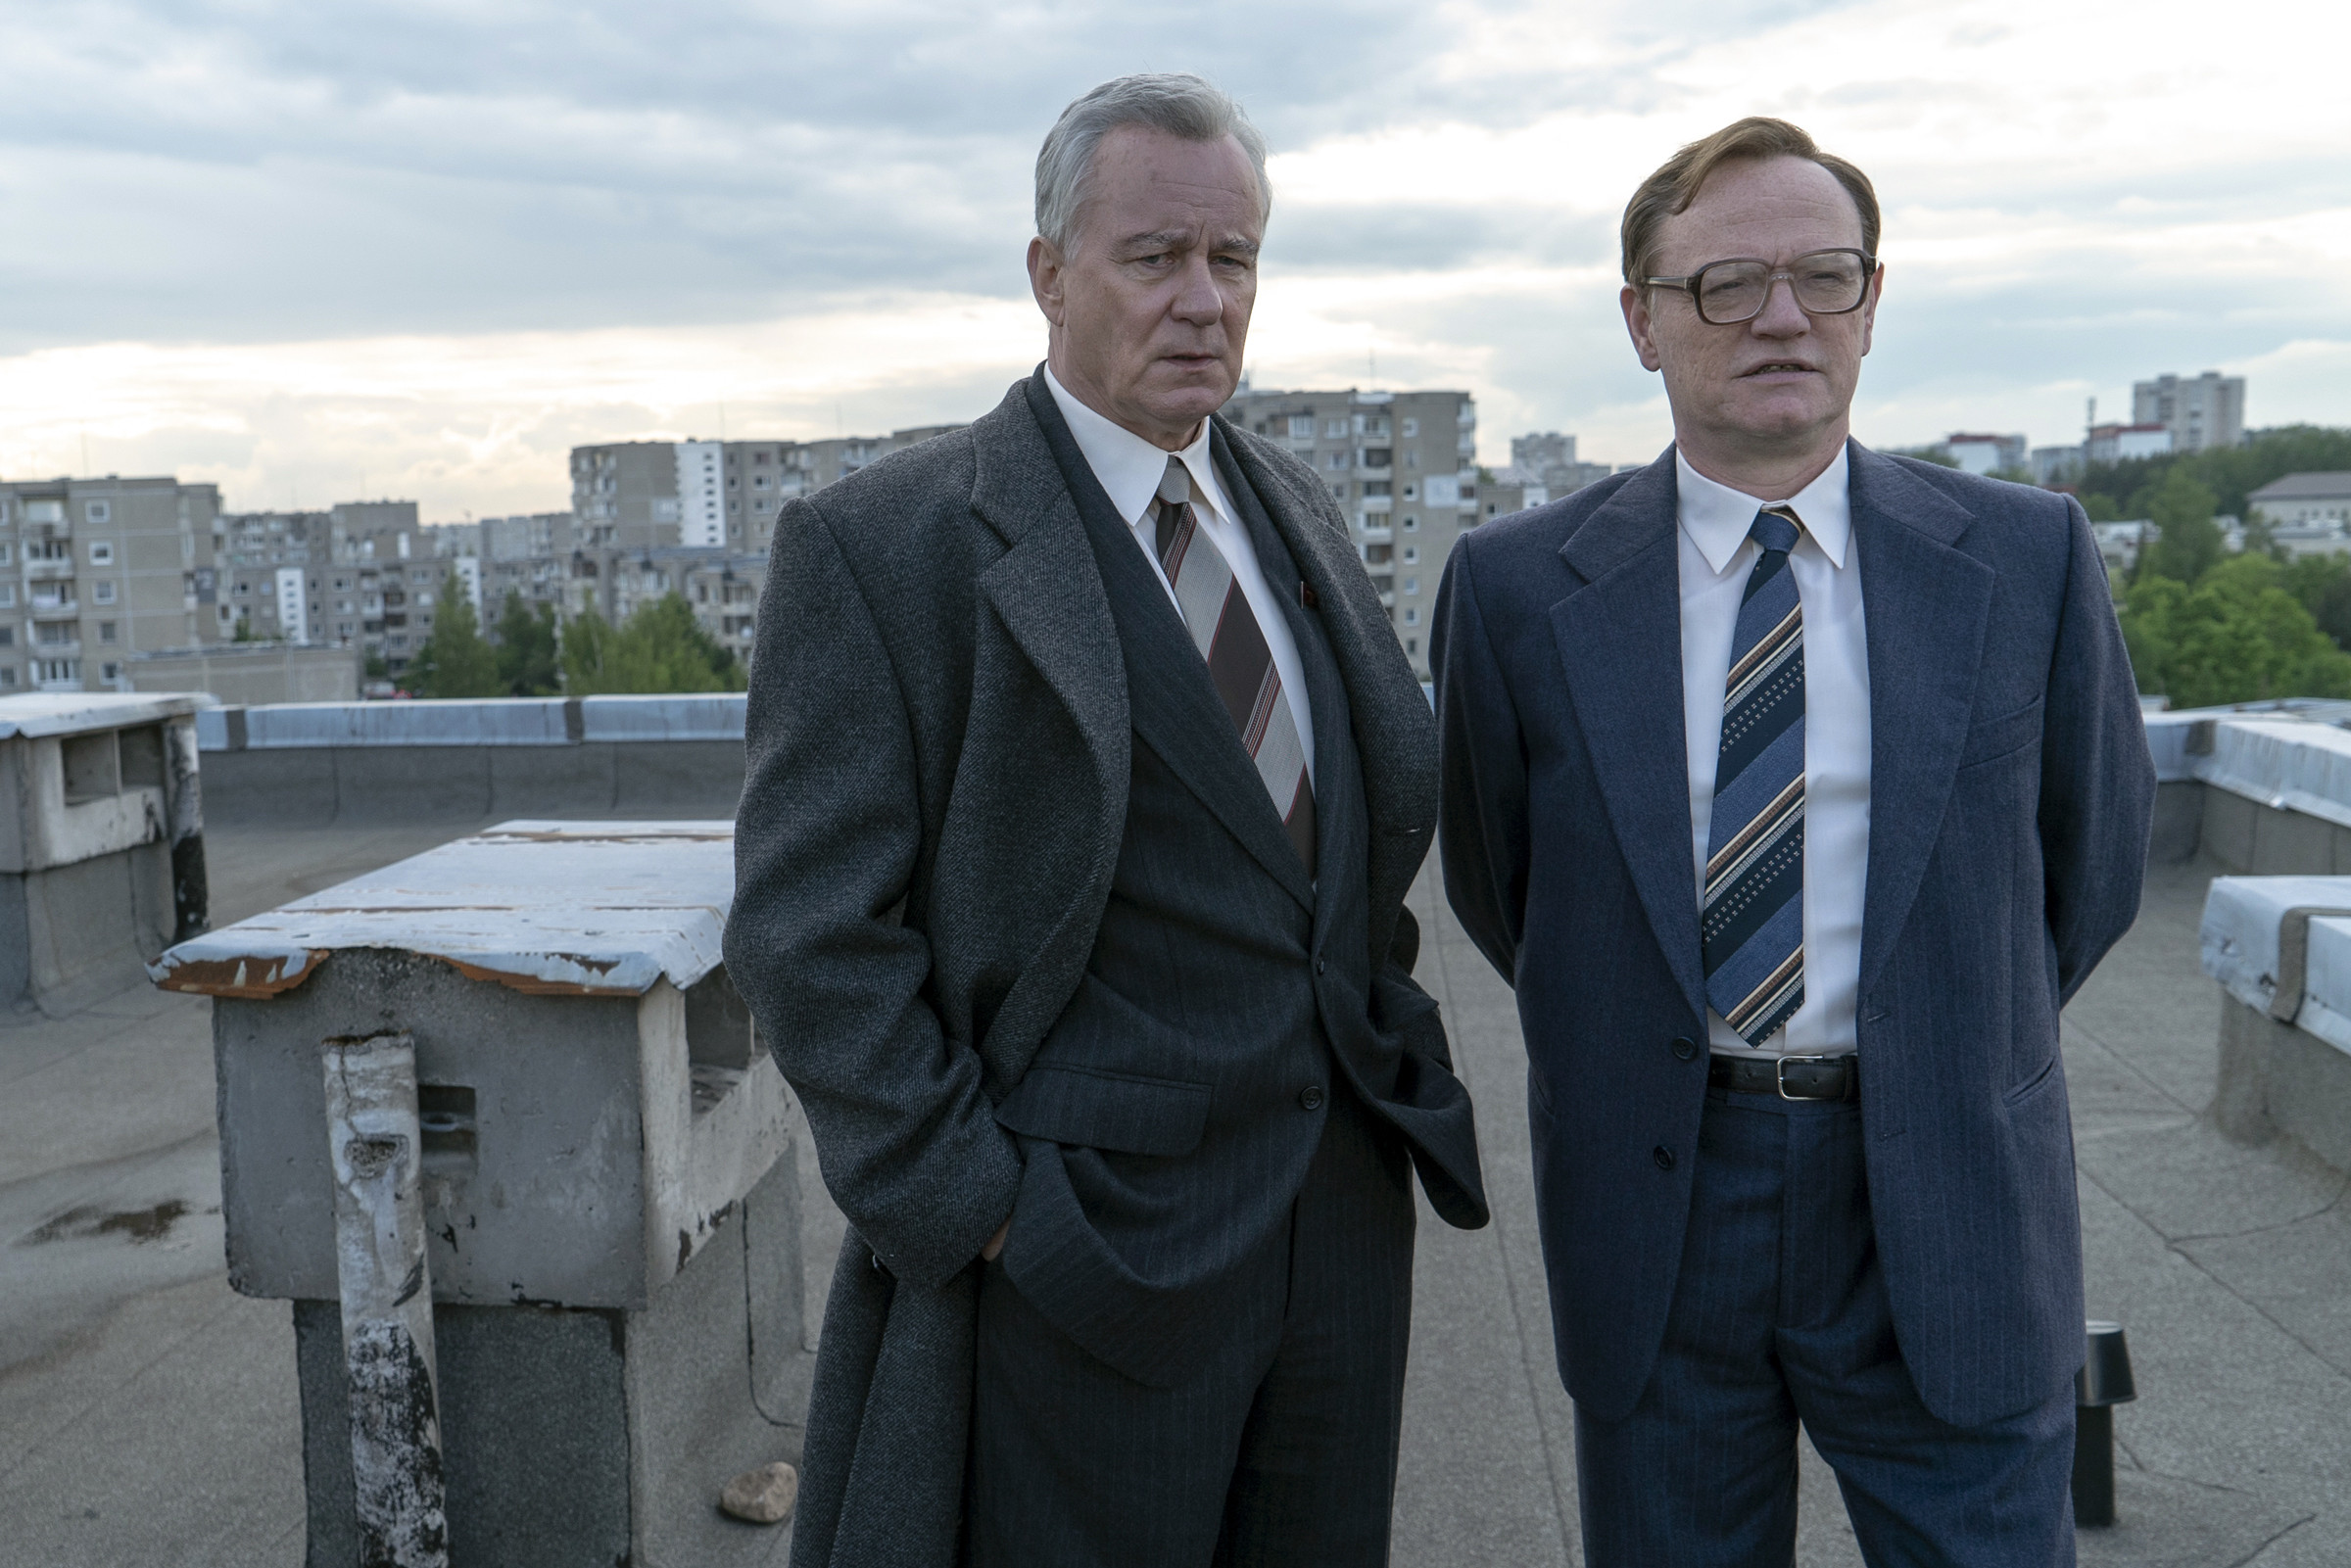 Stellan Skarsgard (left) as Boris Shcherbina and Jared Harris (right) as Valery Legasov.